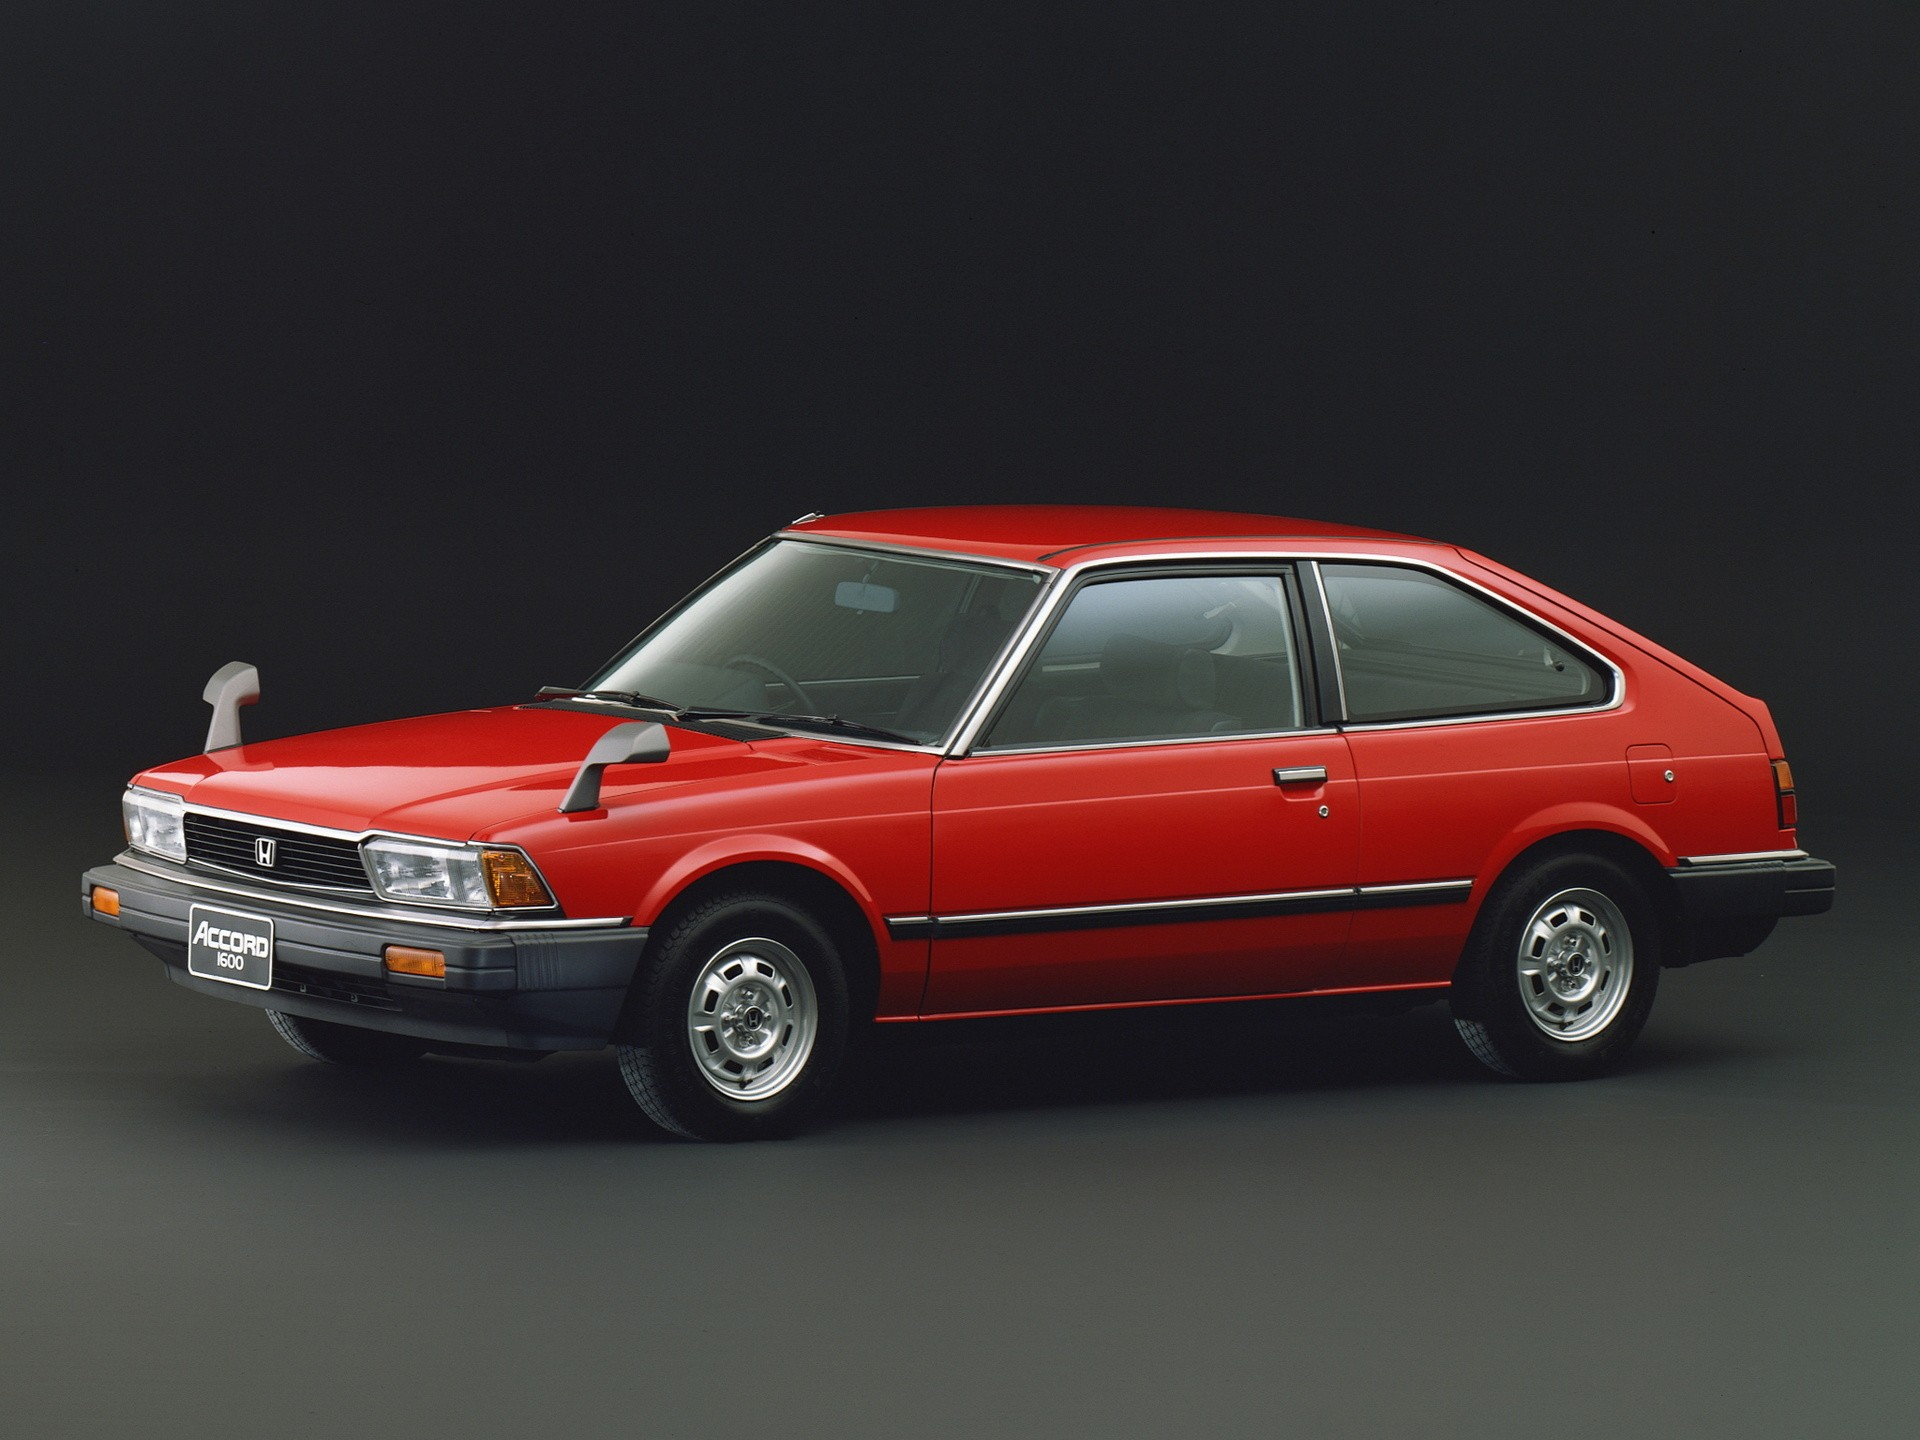 1985 Honda Accord >> HONDA Accord 3 Doors specs - 1981, 1982, 1983, 1984, 1985 - autoevolution